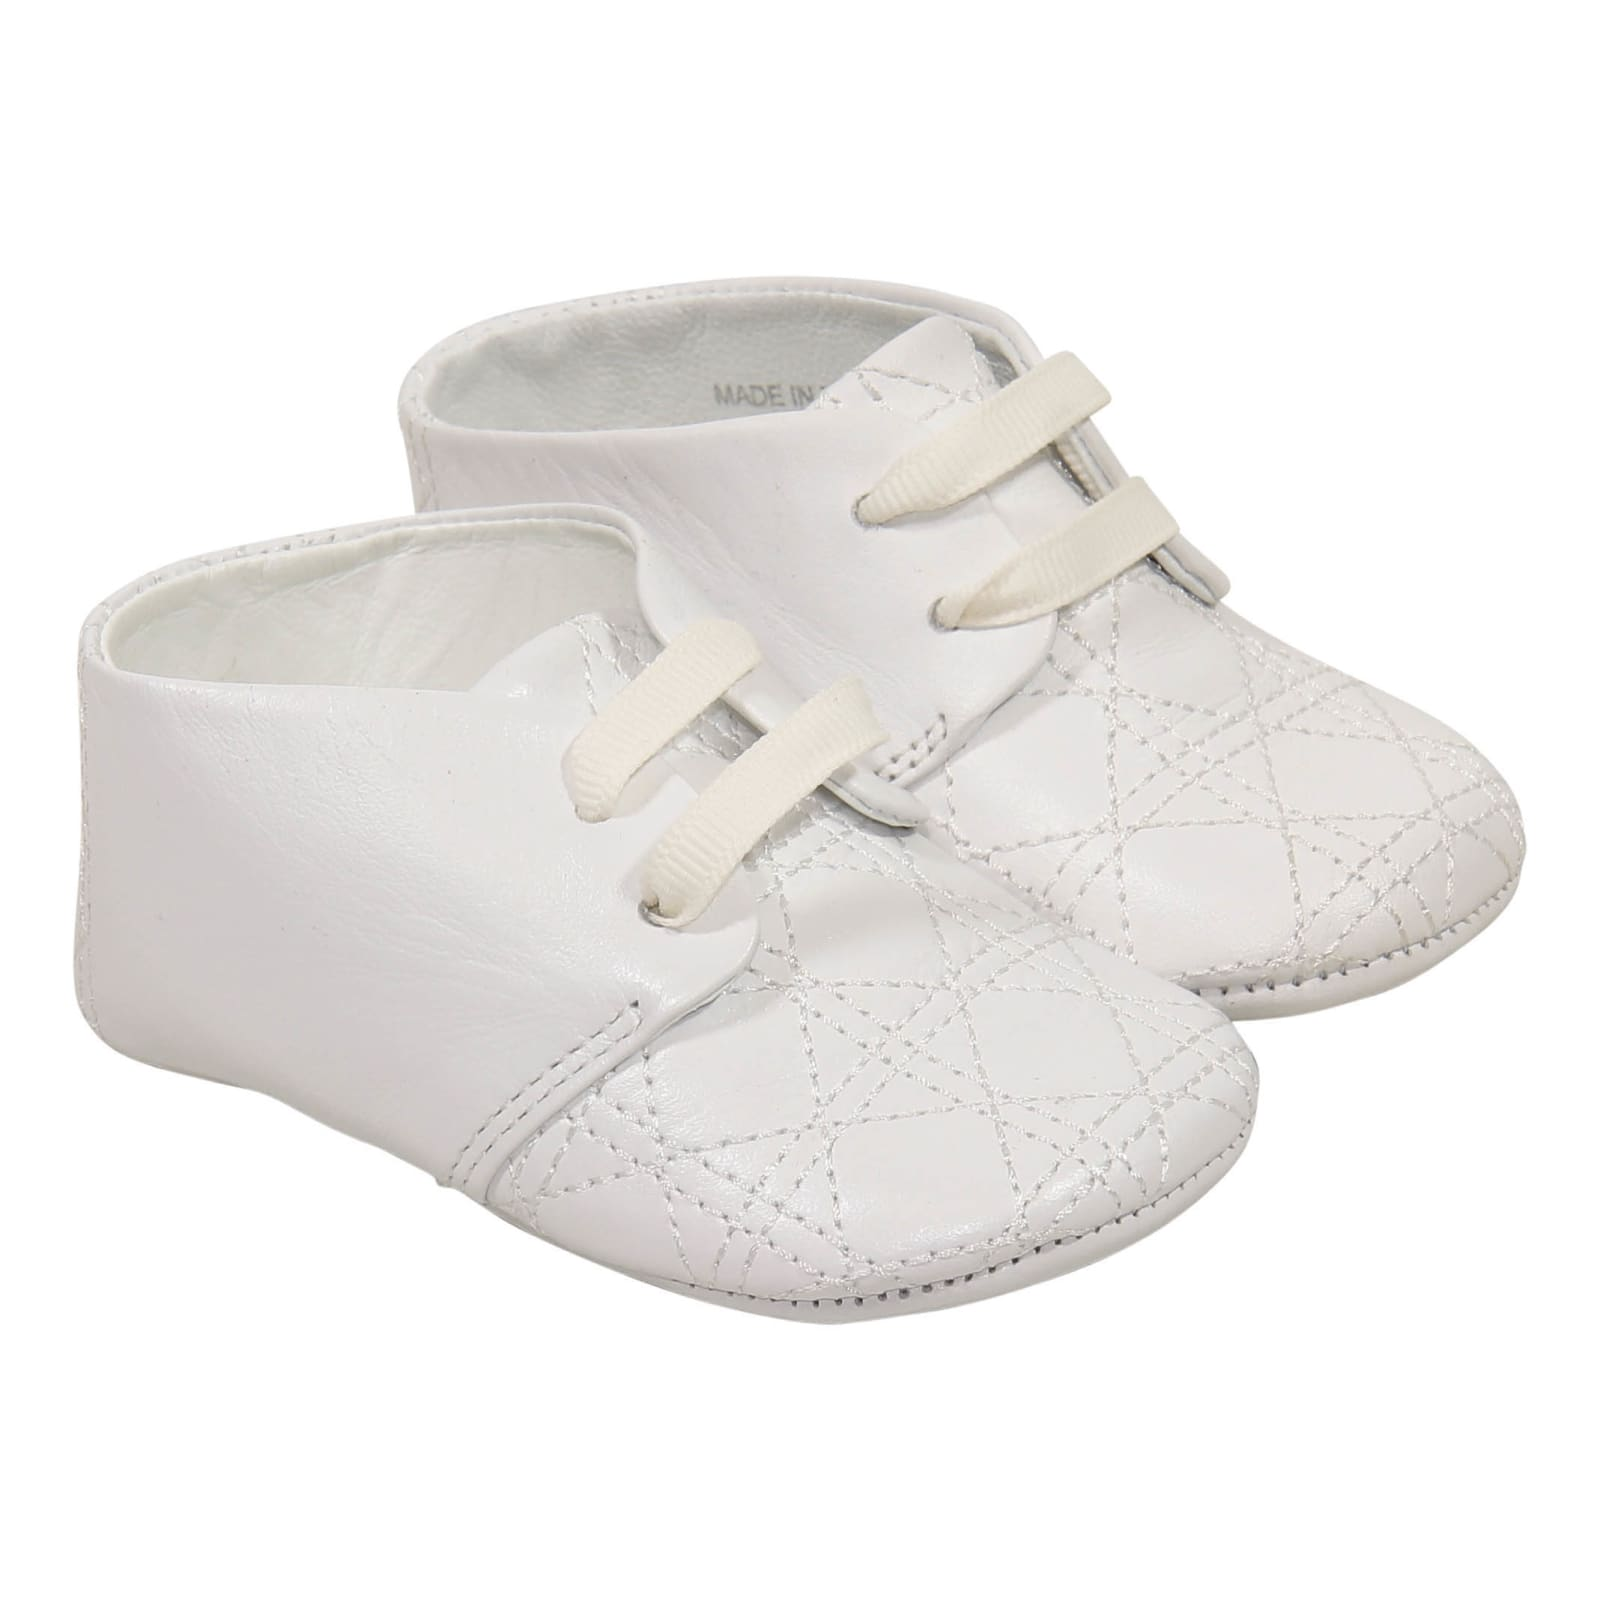 Baby Dior Baby Dior Shoes - Bianco